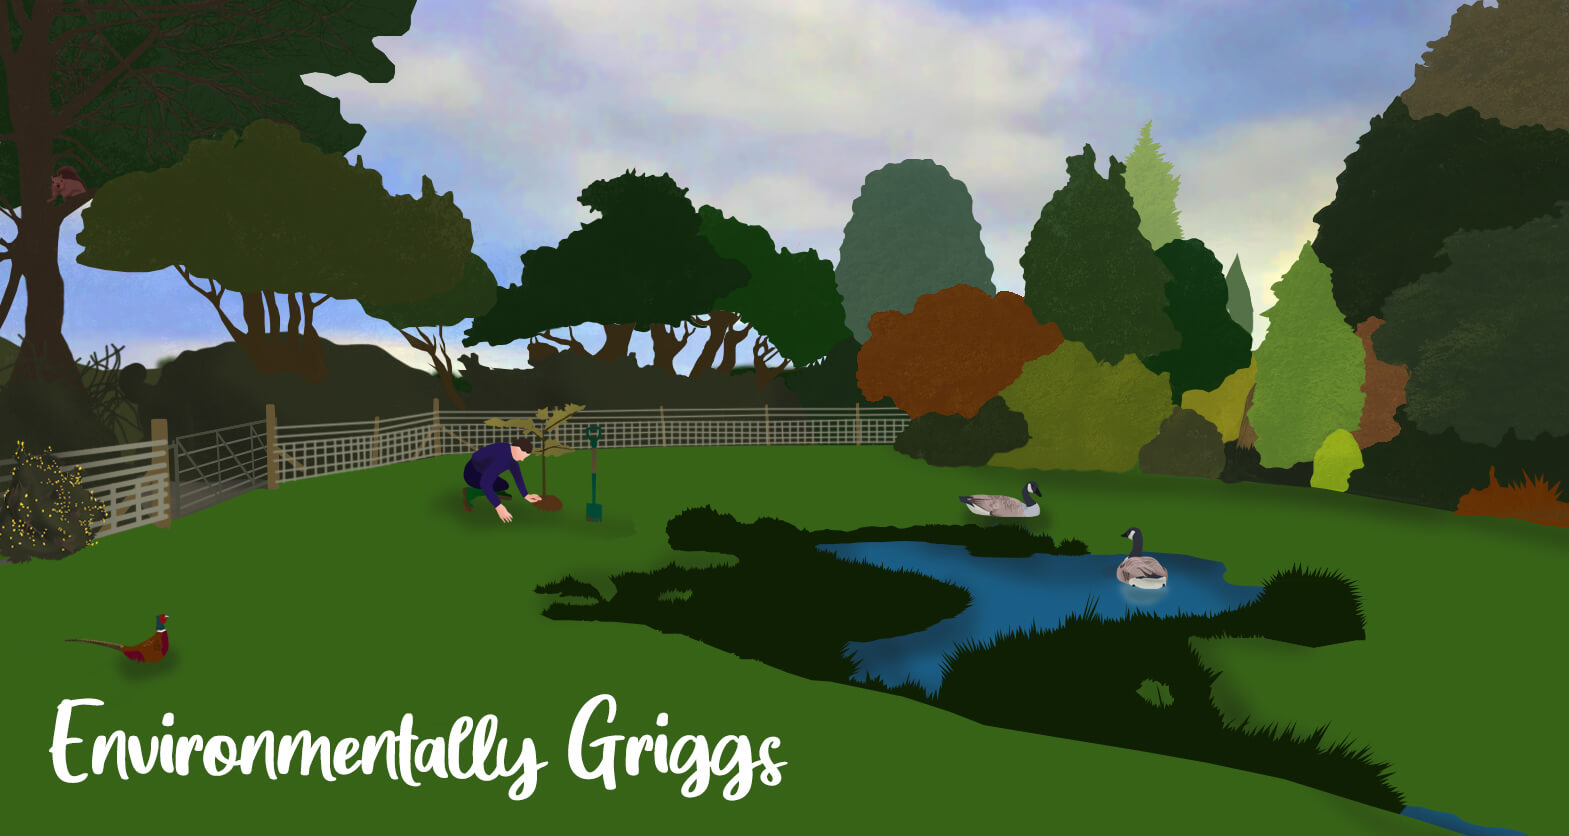 Environmentally Griggs Illustration